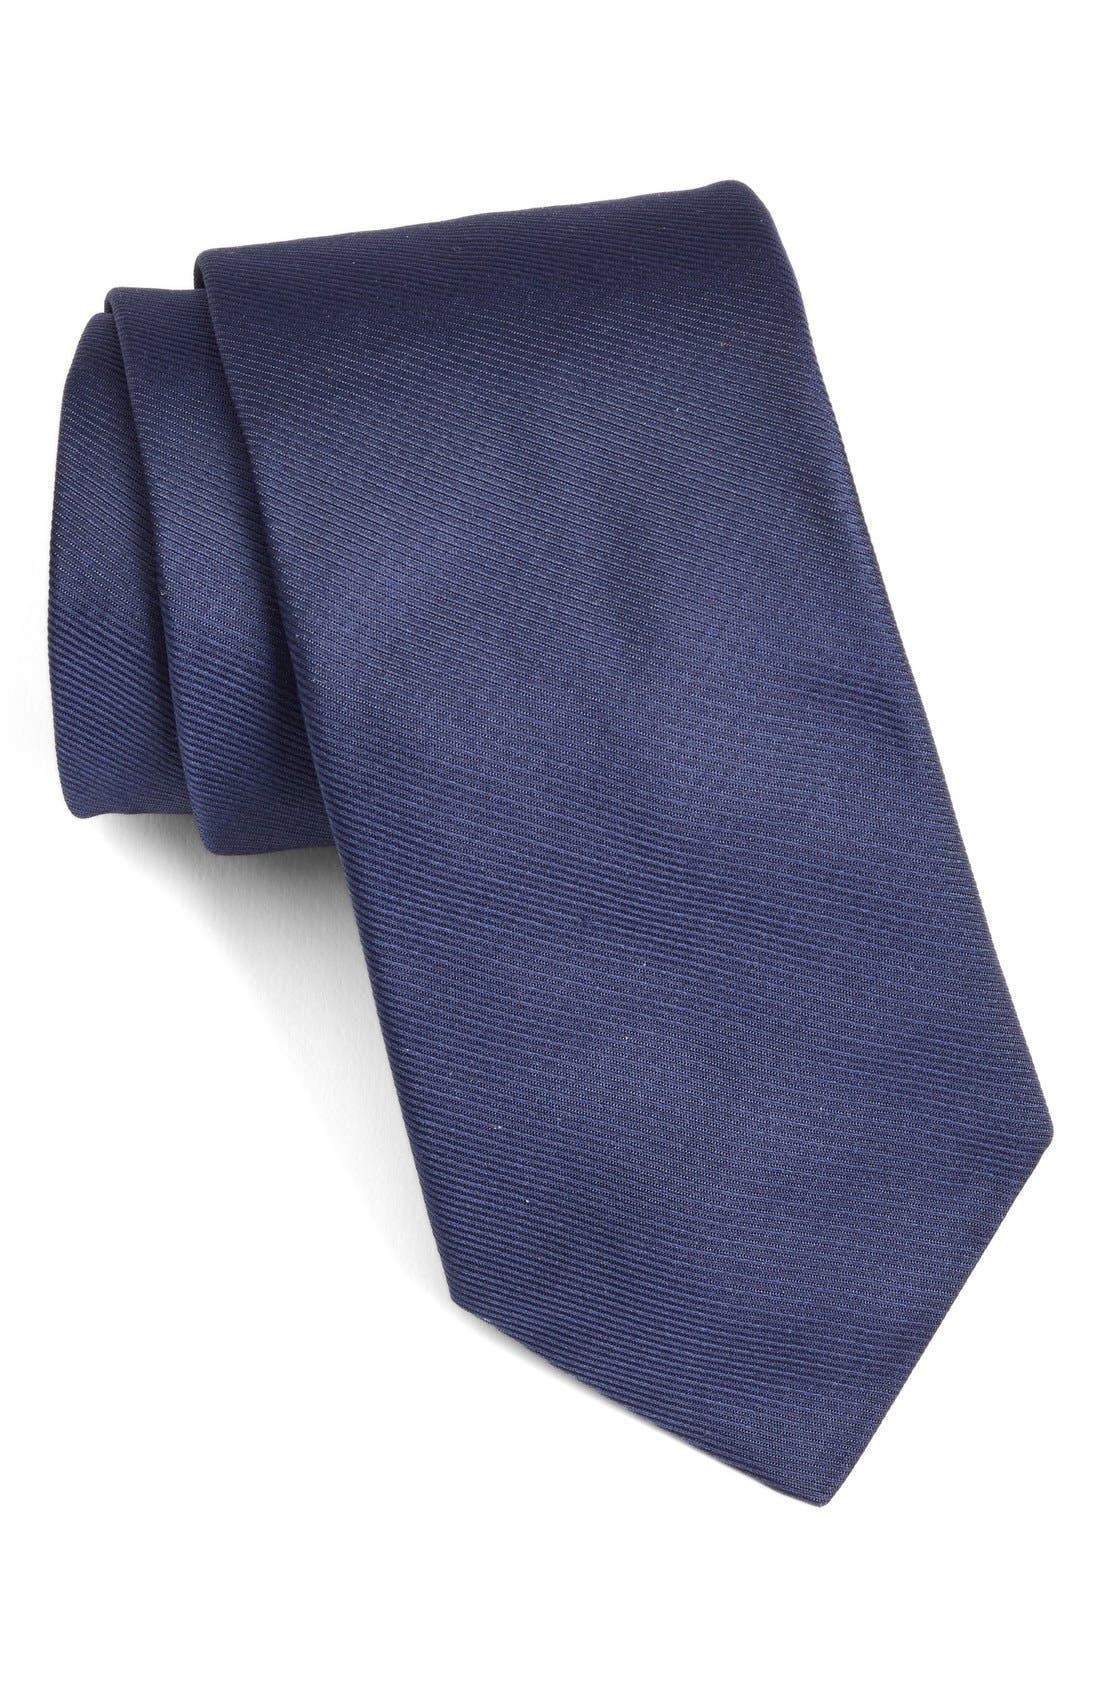 Solid Woven Silk Tie,                         Main,                         color,